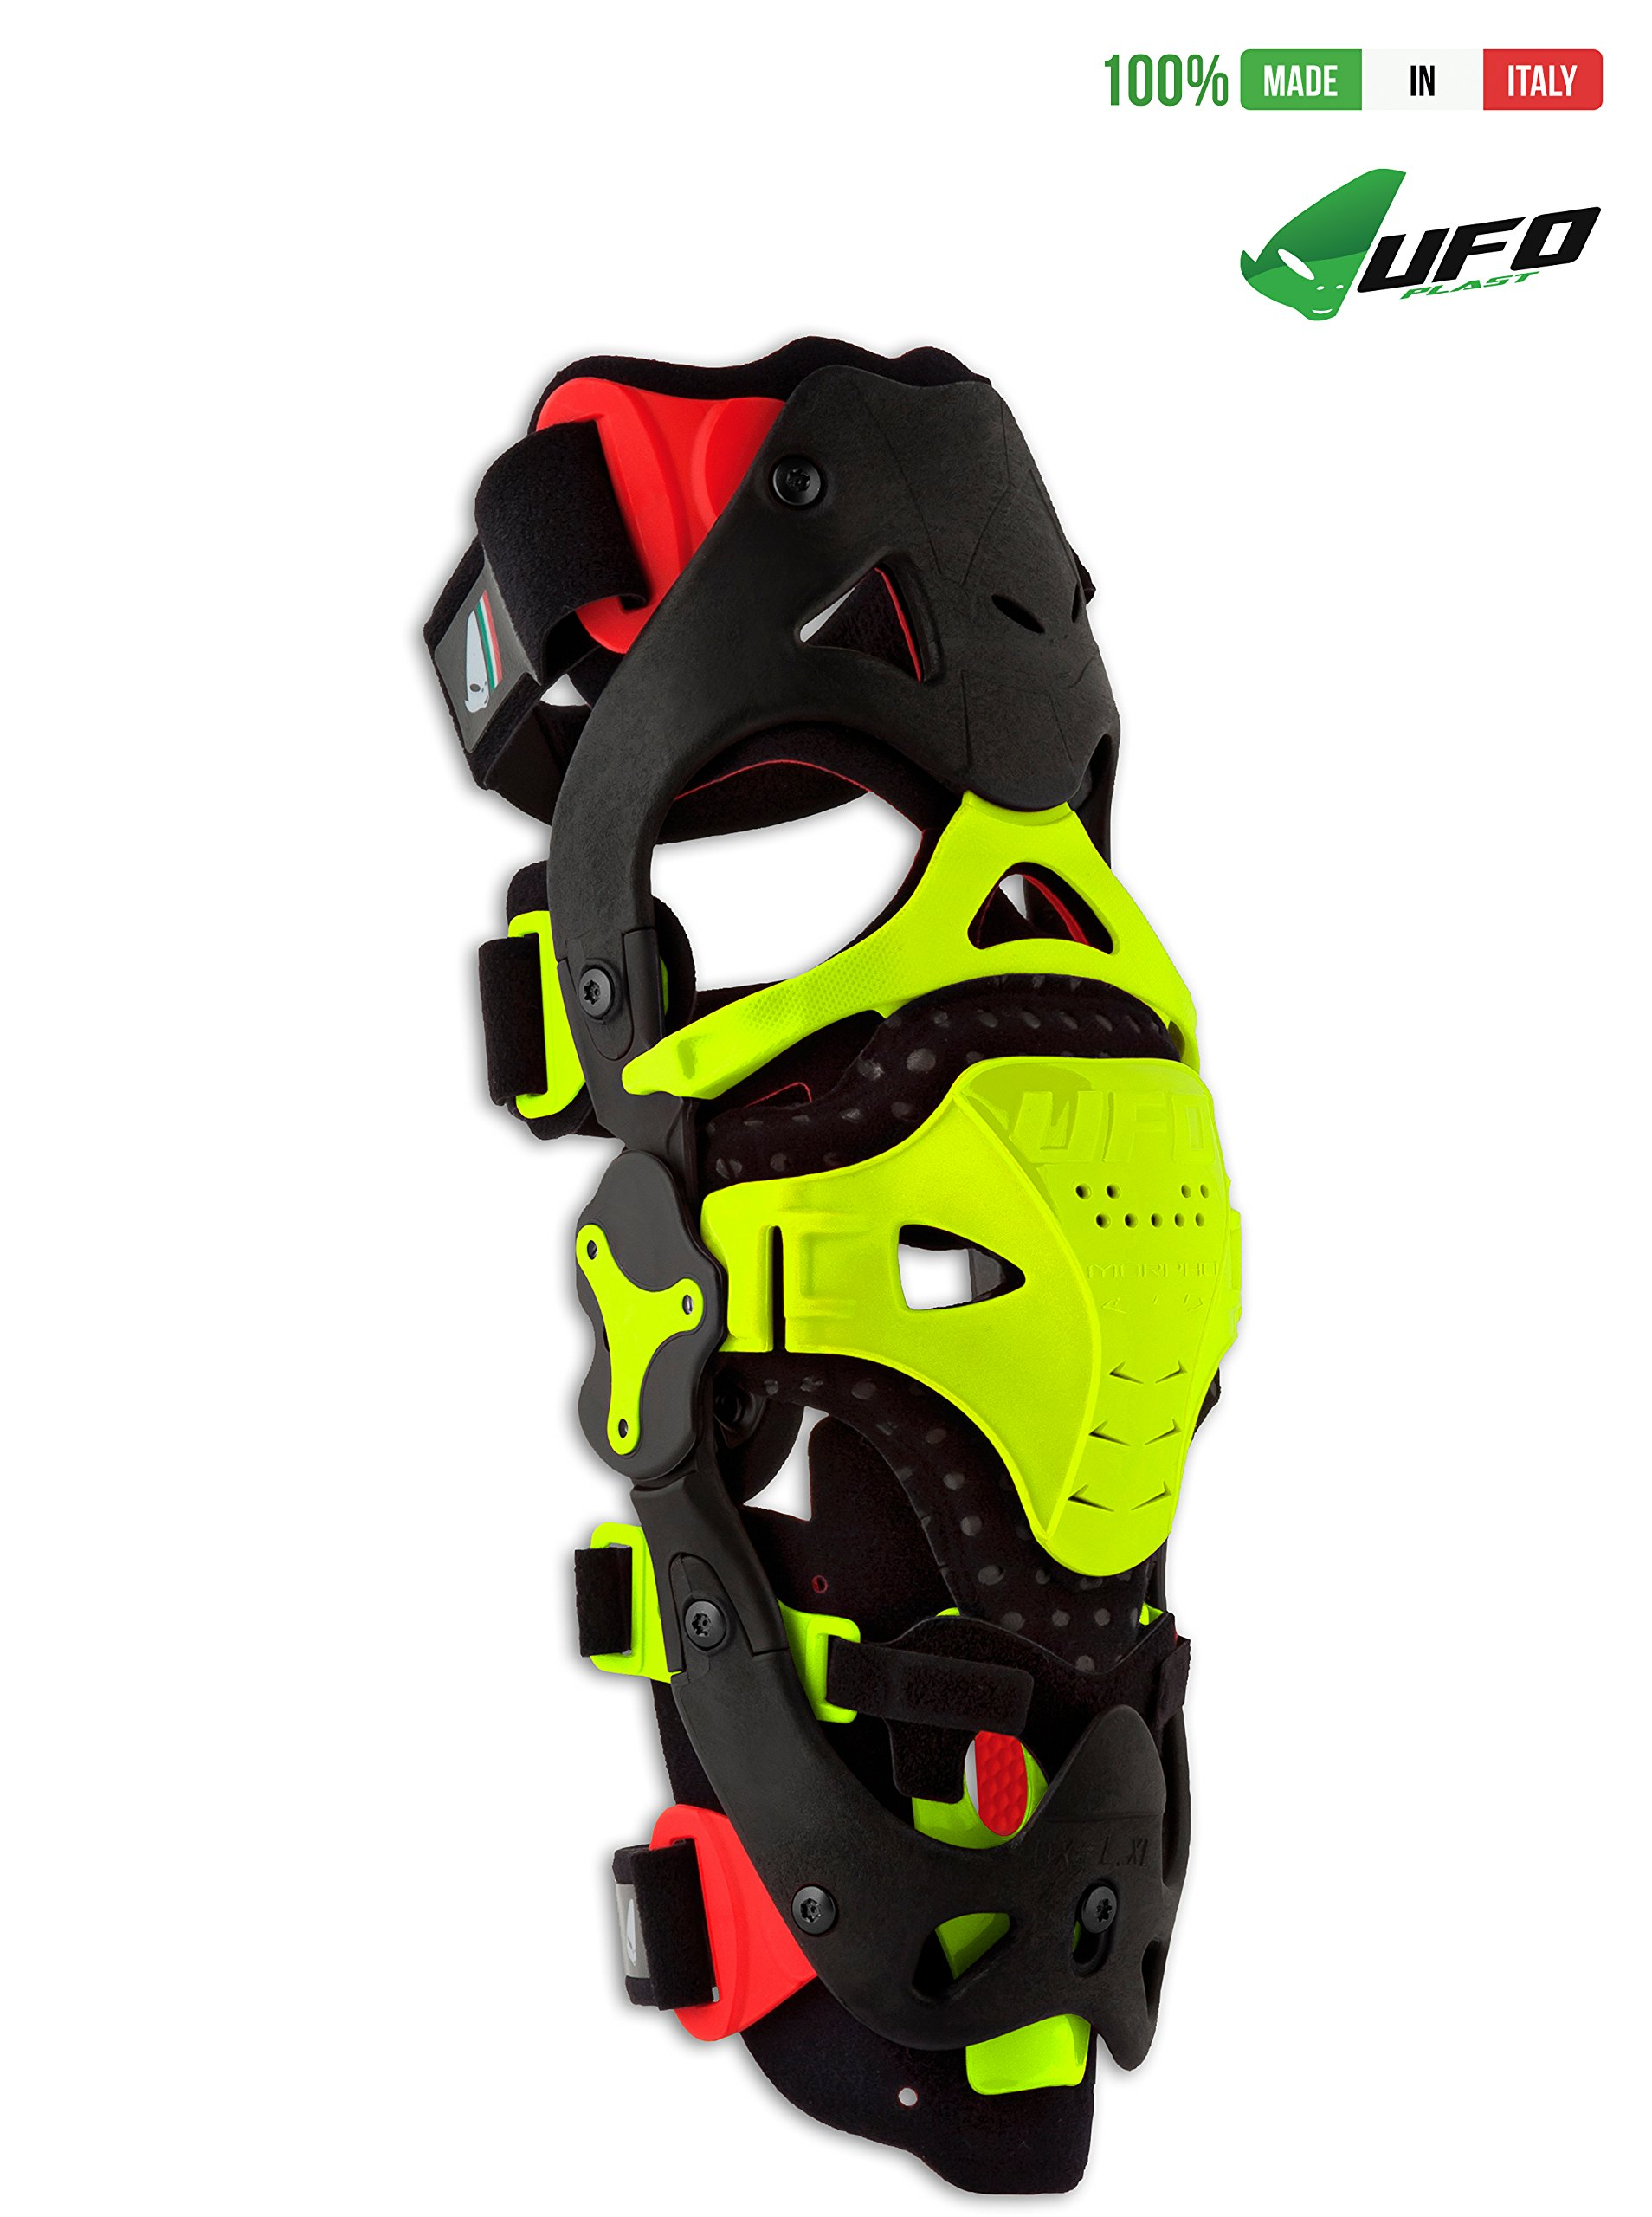 UFO PLAST Made in Italy KB002 MORPHO FIT - RIGHT SIDE Jointed Brace for Knee Protection in Sport / Patella Protection / Motorcycle, Motocross, Snowboard, Skateboard, Ski - L/XL / Color: Neon Yellow